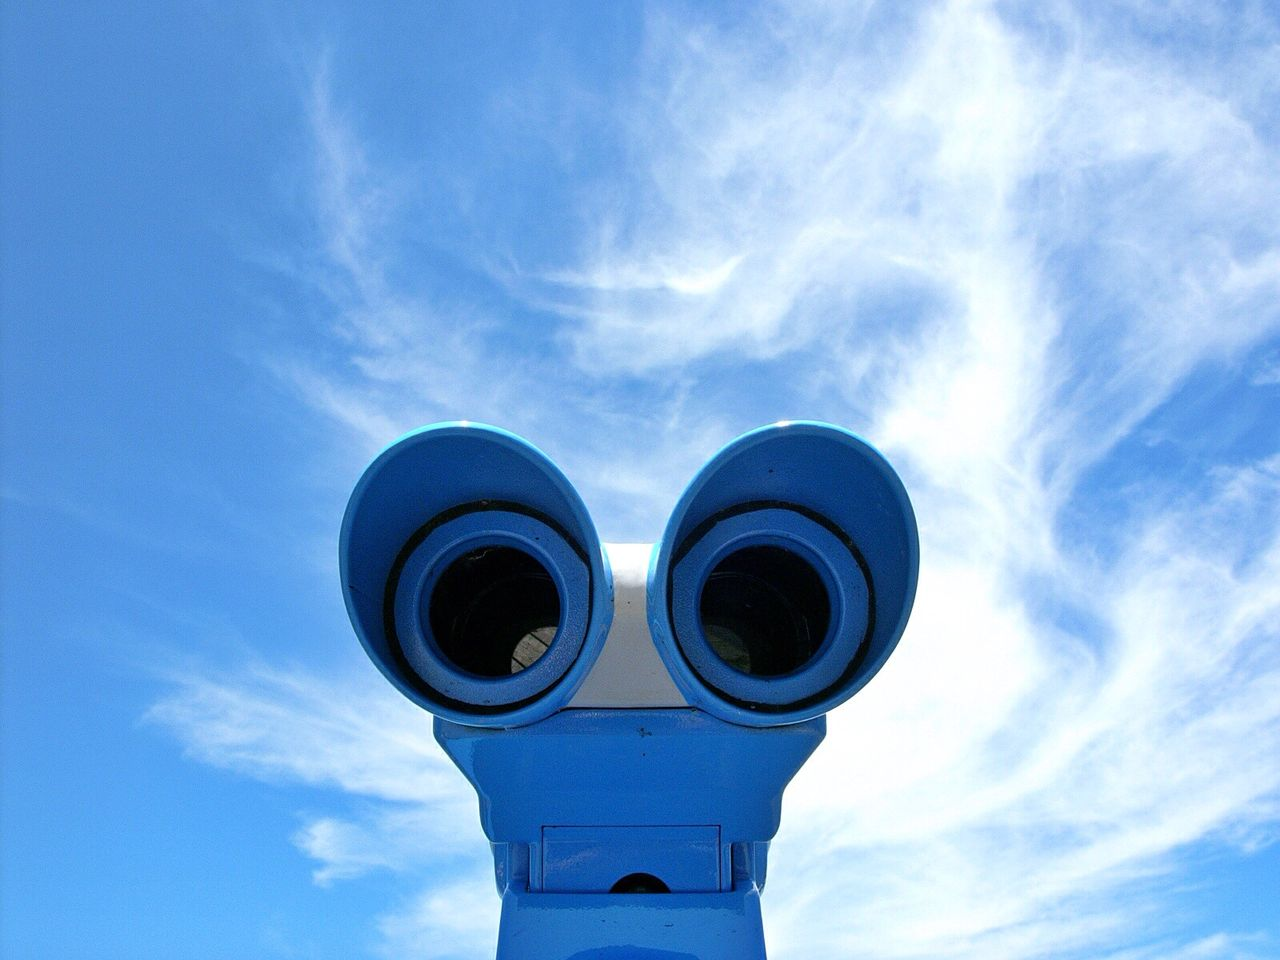 blue i see faces clouds and sky Walking around summer Hello world no people Low angle view The OO Mission